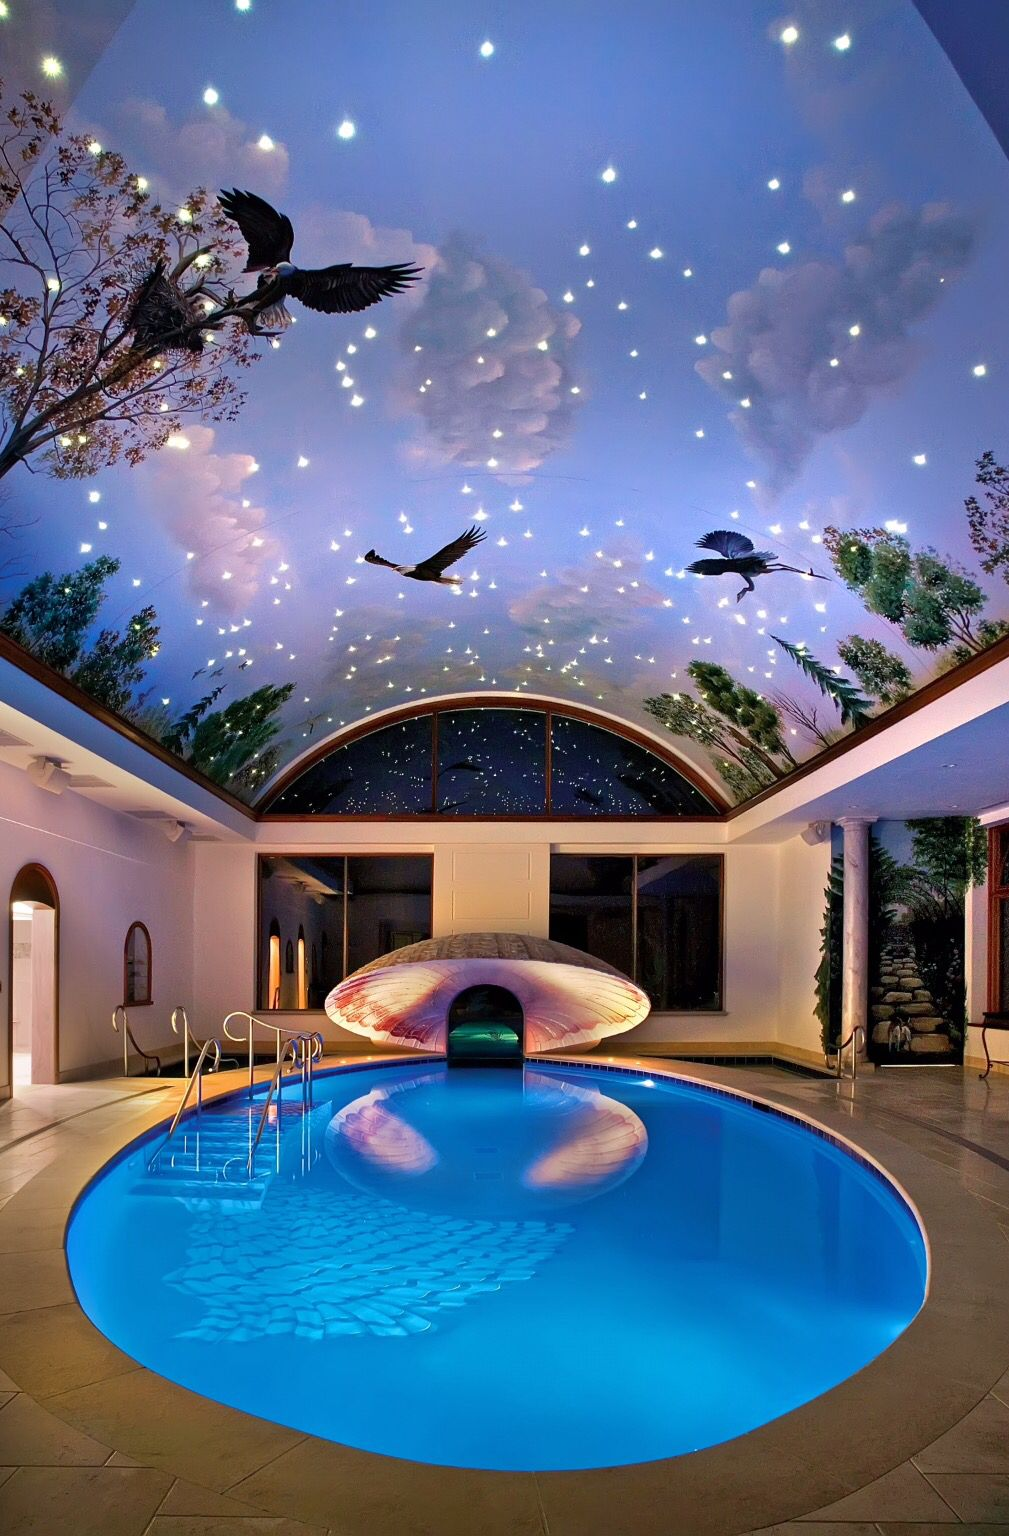 Pin by Samantha Culver on Pools Pool houses, Indoor